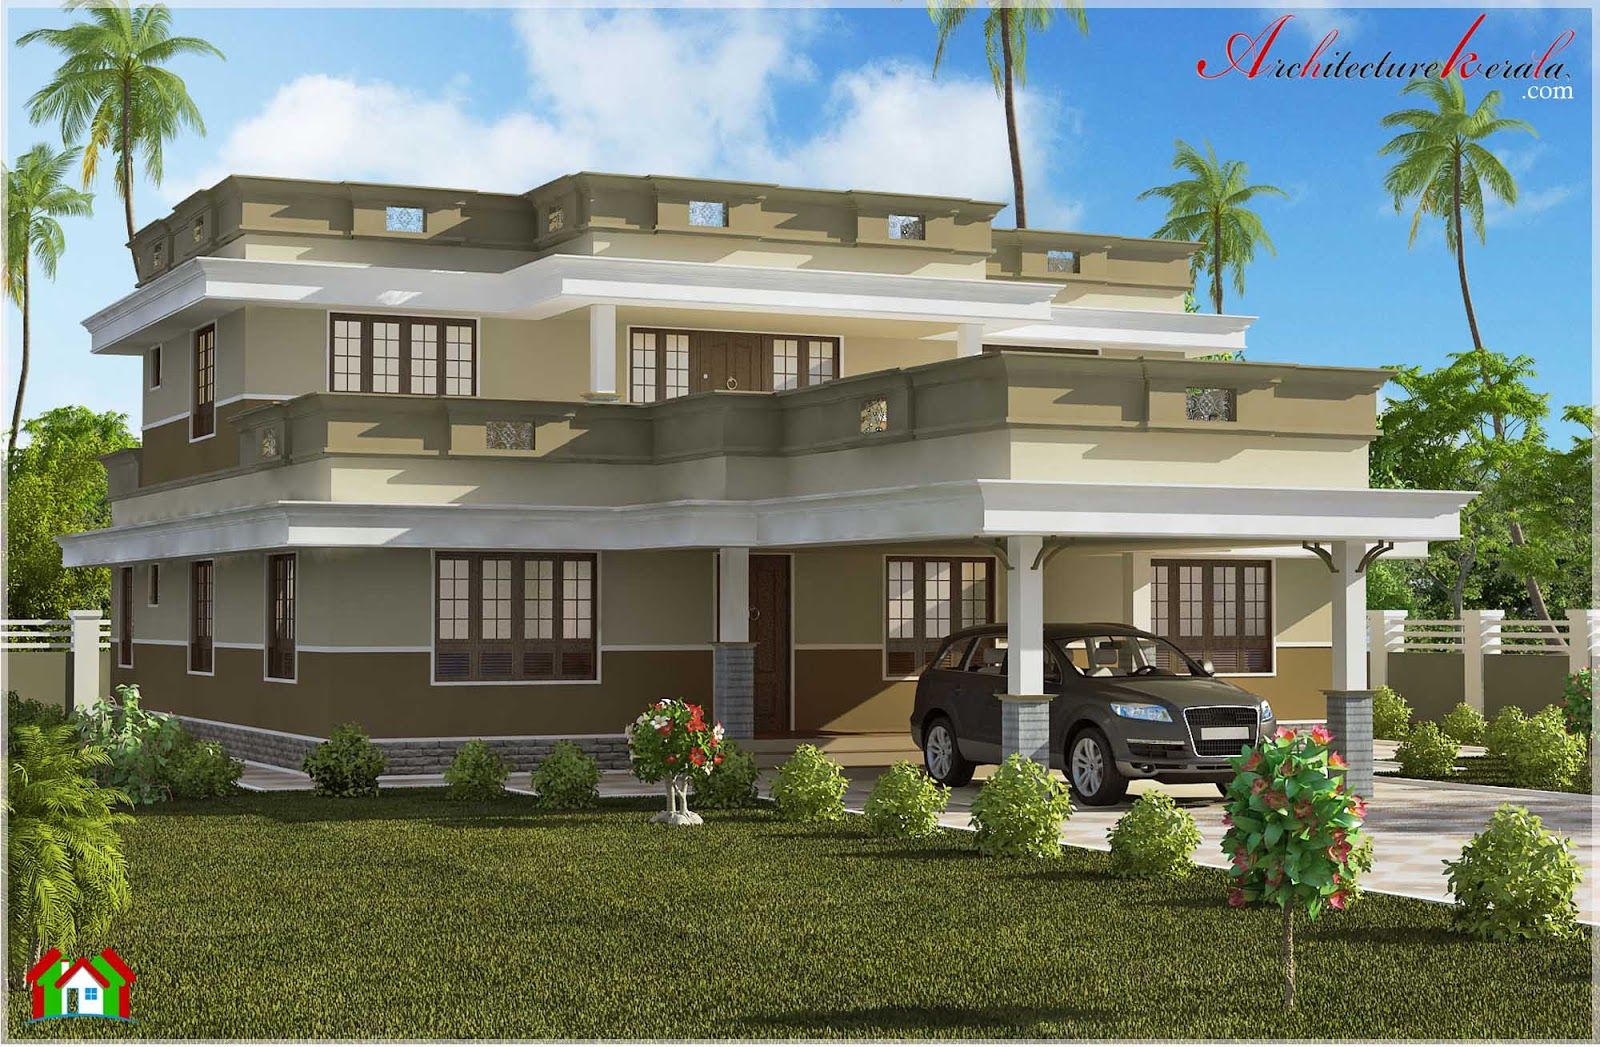 Beautiful flat roof home design architecture kerala for Flat roof house plans kerala